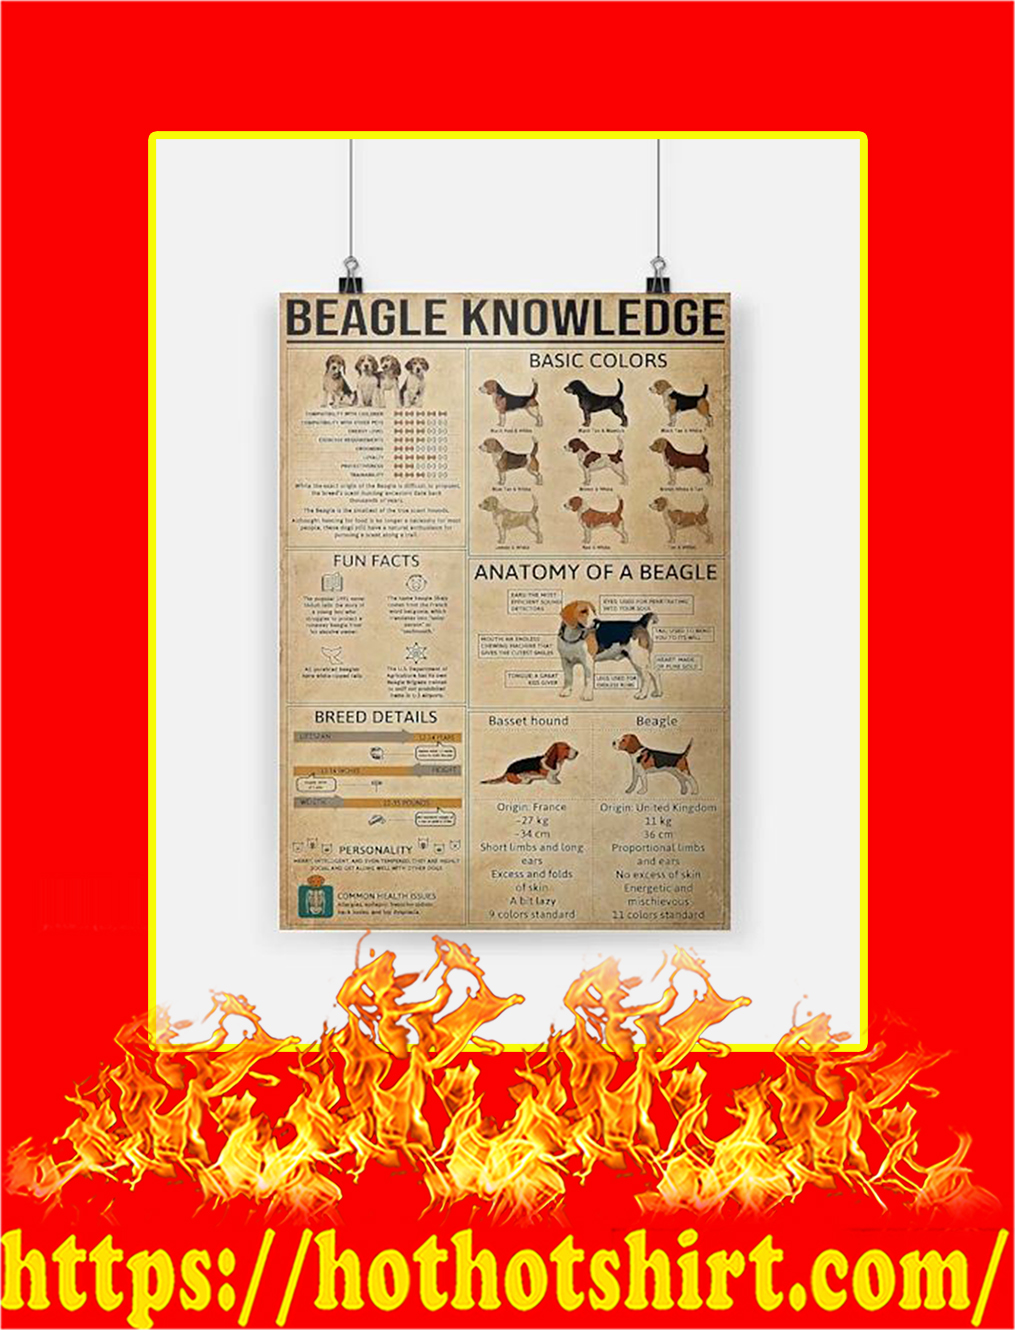 Beagle knowledge Poster - A4